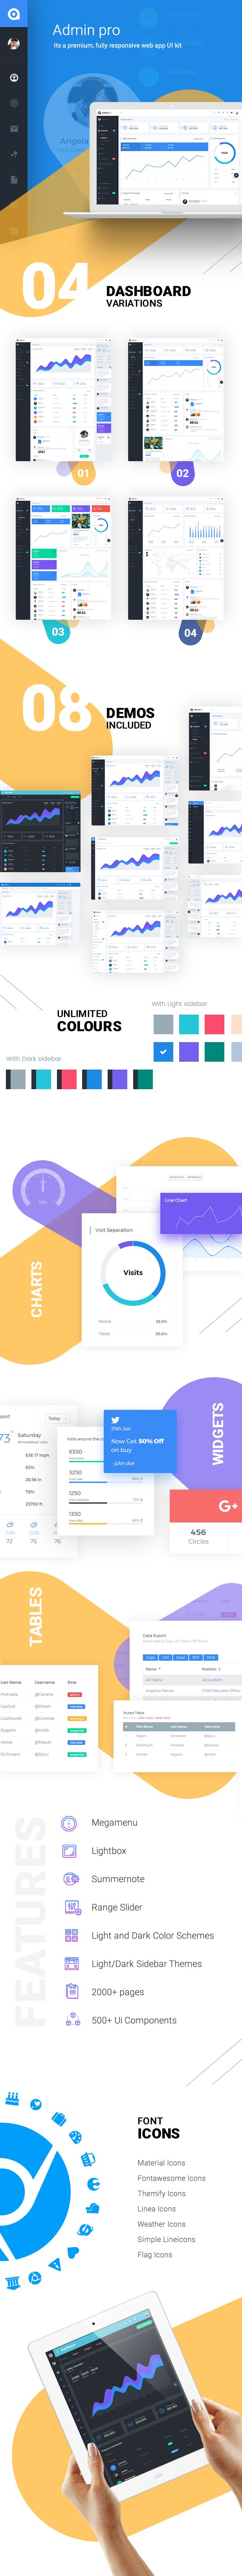 AdminPro Dashboard is a popular open source WebApp template for admin dashboards and control admin panels. AdminPro is fully responsive HTML template, based on the CSS framework Bootstrap 4 Beta....